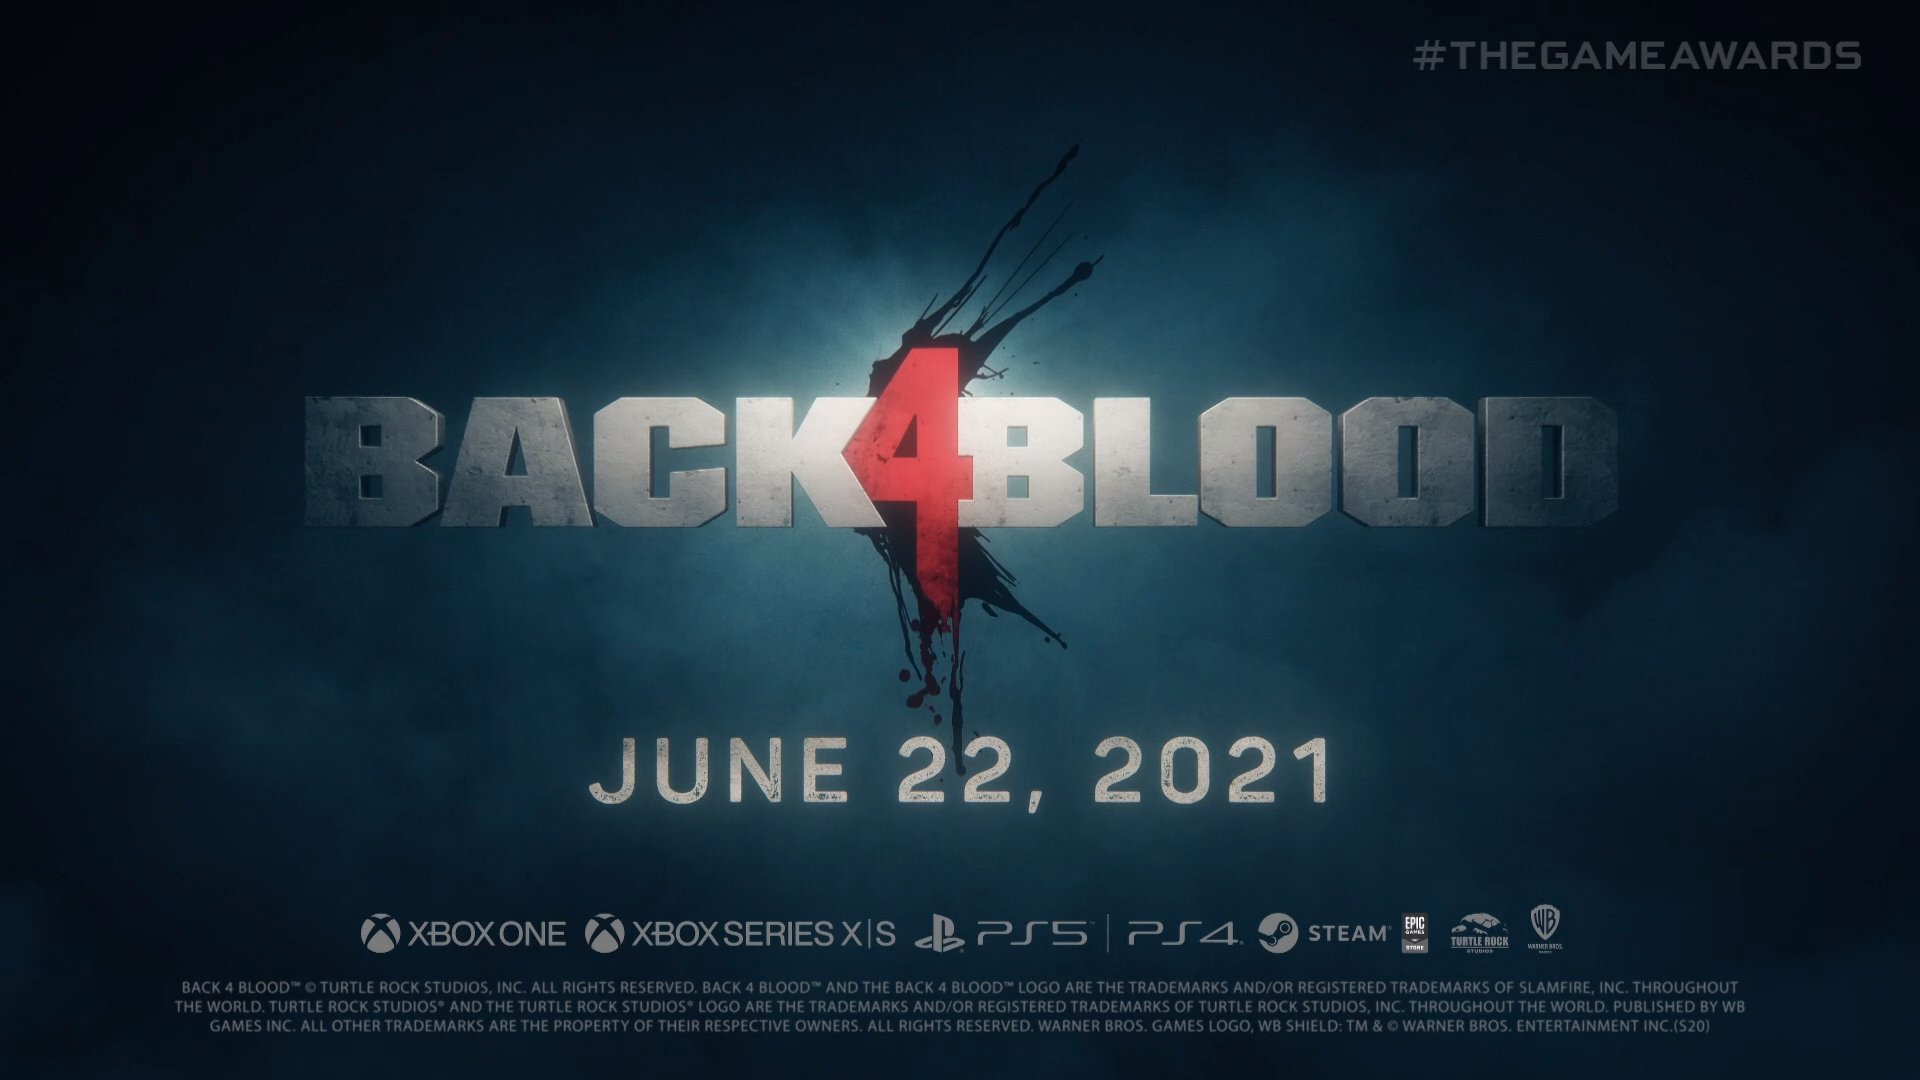 Back 4 Blood First Gameplay Revealed